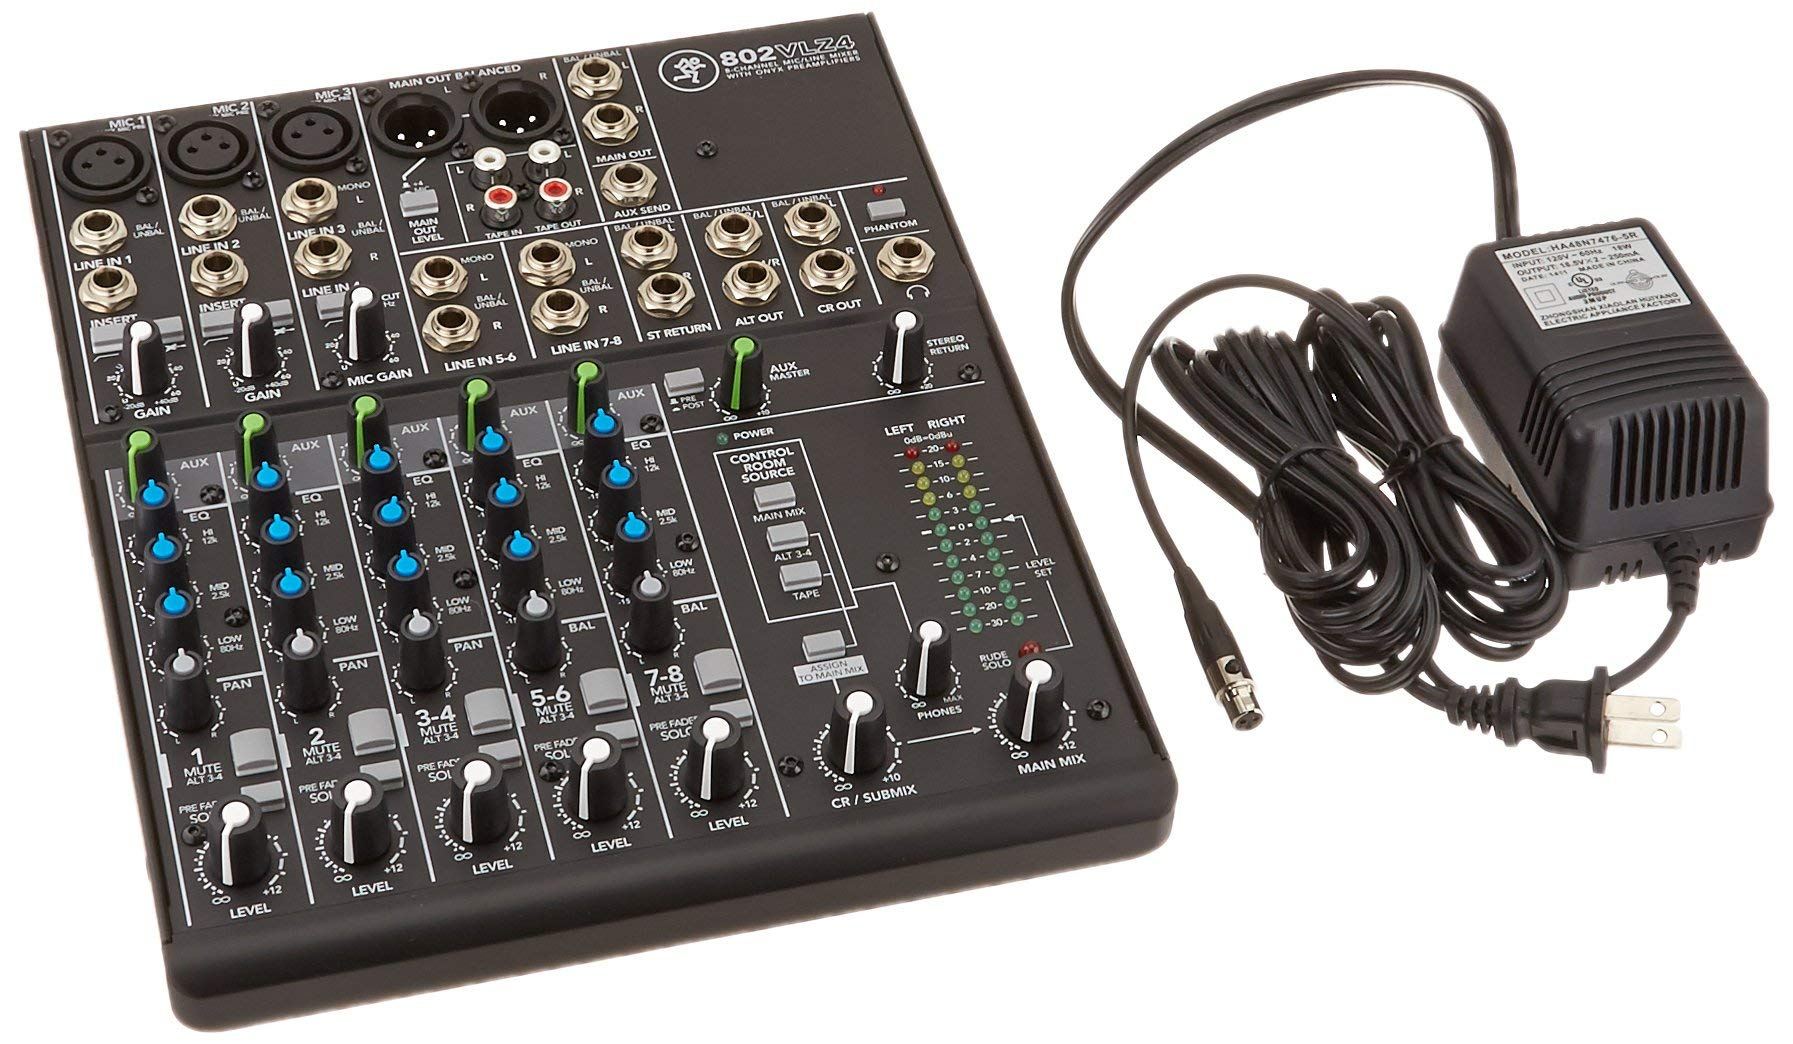 Mackie 802VLZ4, 8-channel Ultra Compact Mixer with Onyx Preamps (Renewed)